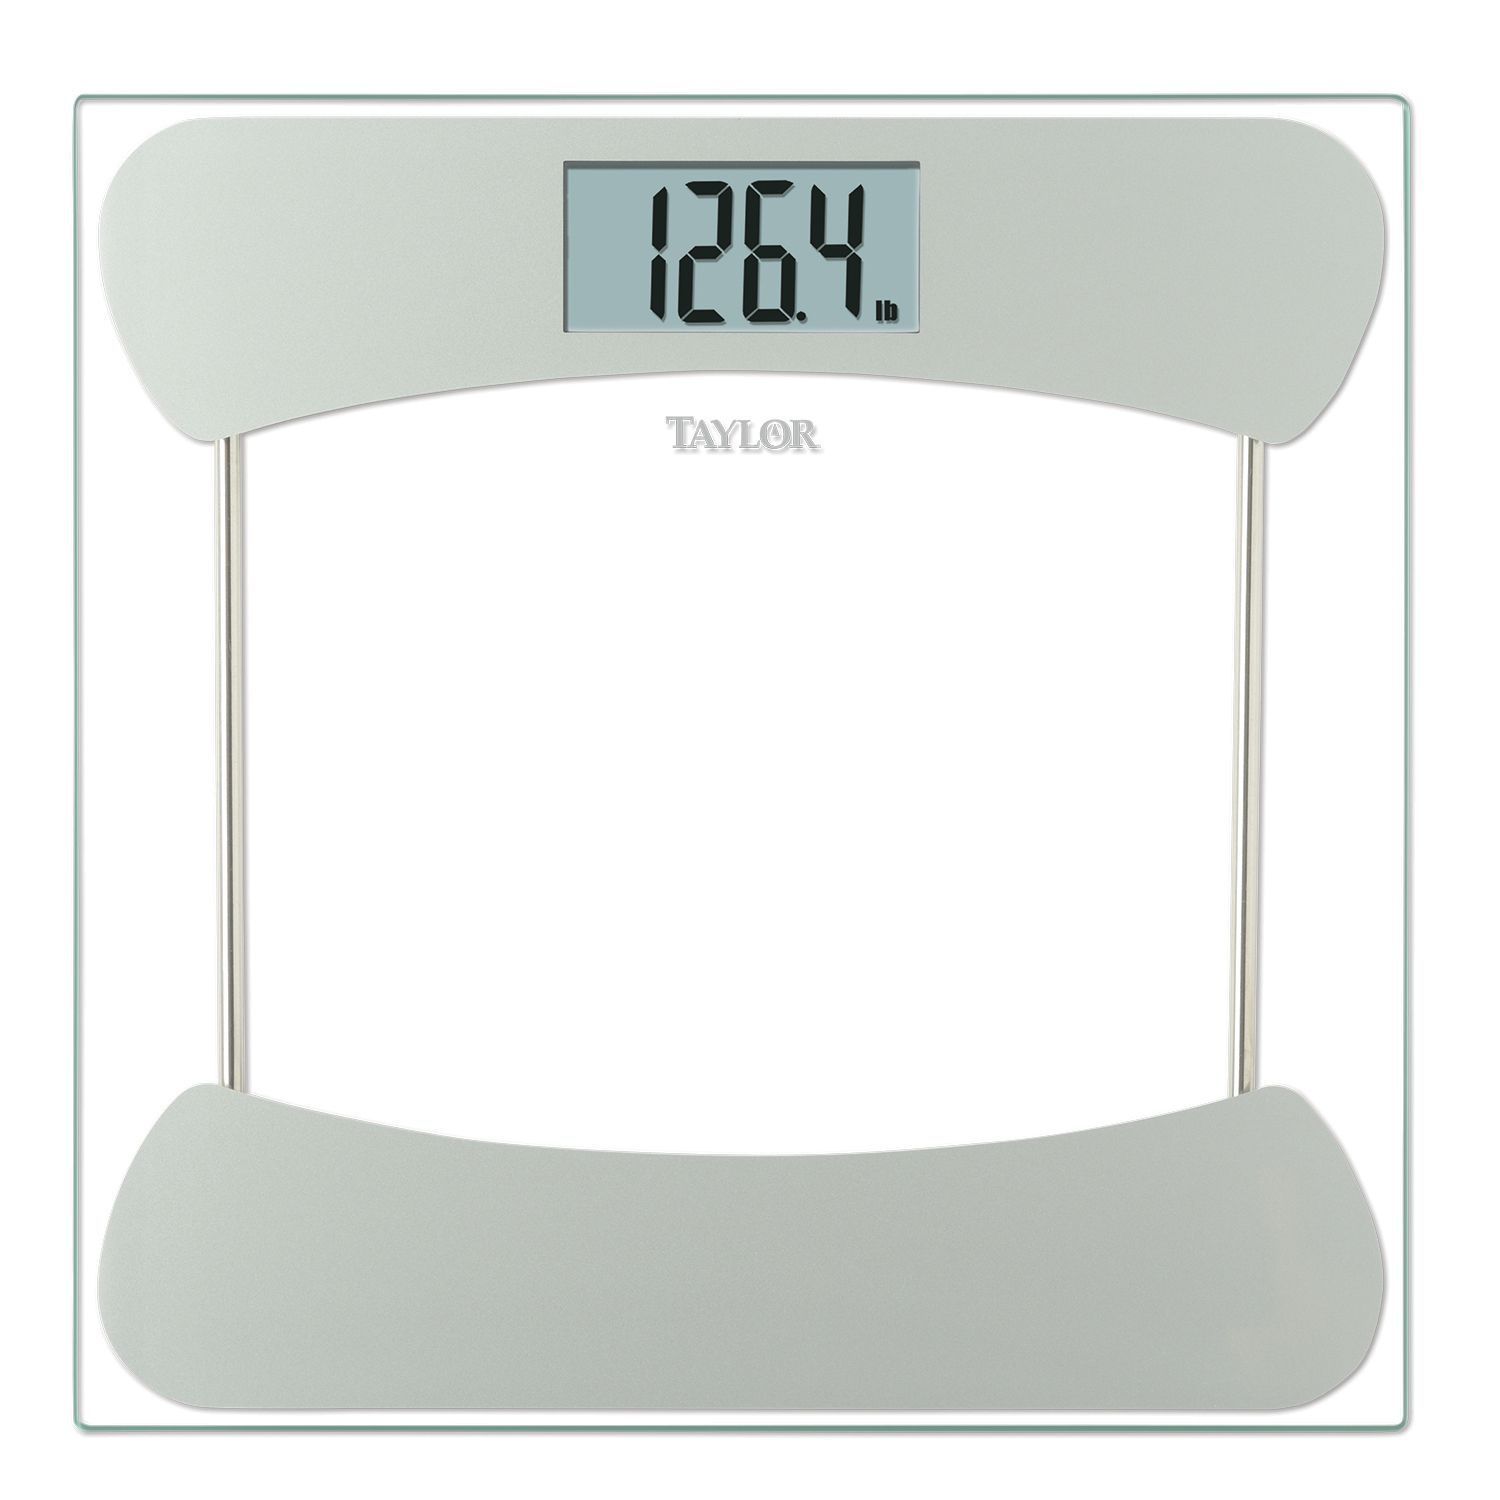 Taylor Silver Tone Accented Glass Digital Scale